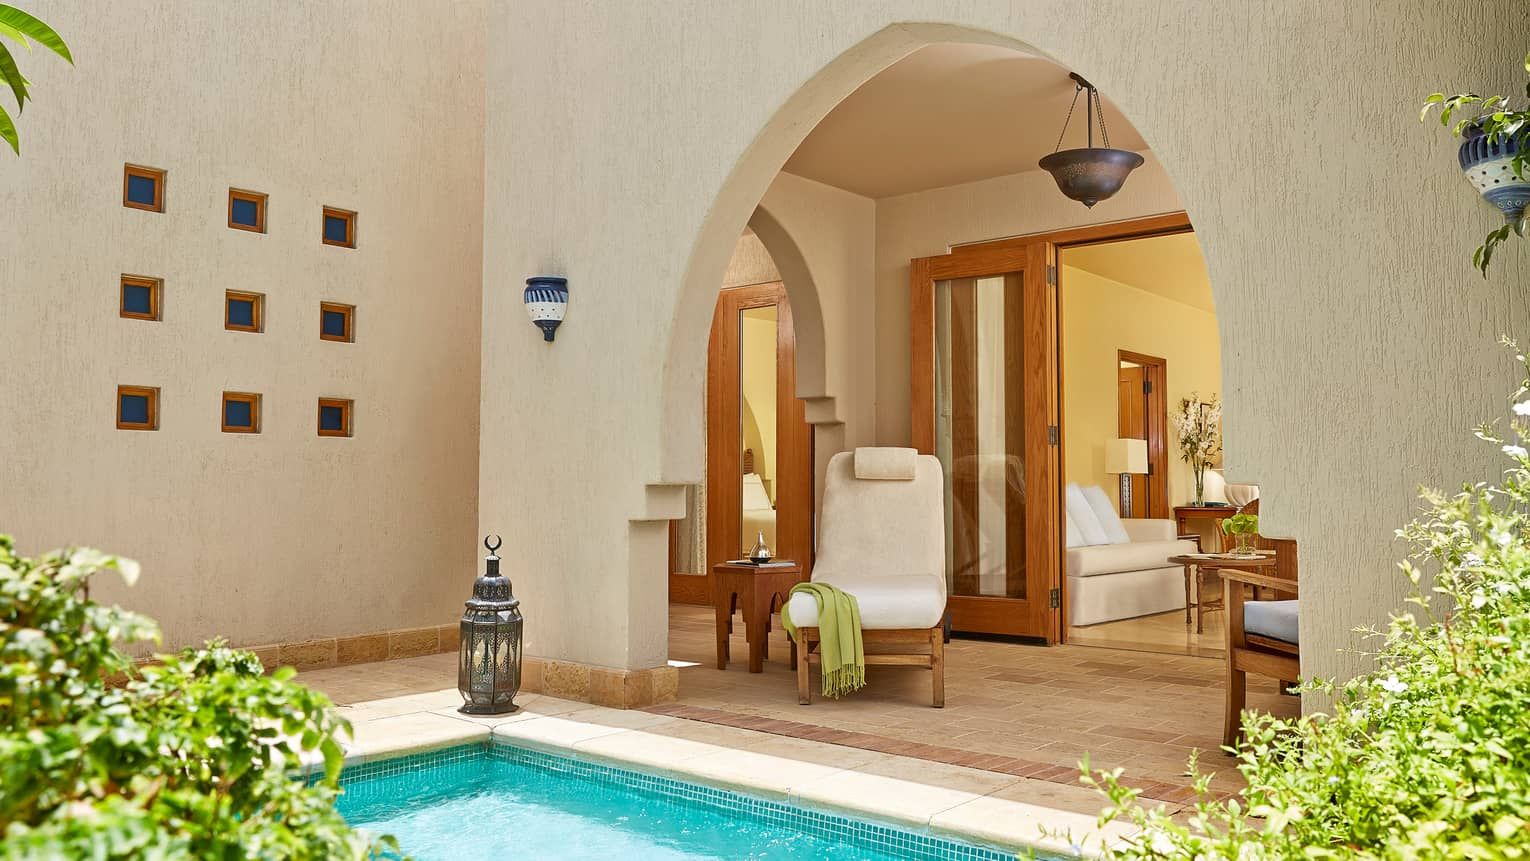 One-Bedroom Suite With Plunge Pool, plush pool chair by corner of turquoise swimming pool